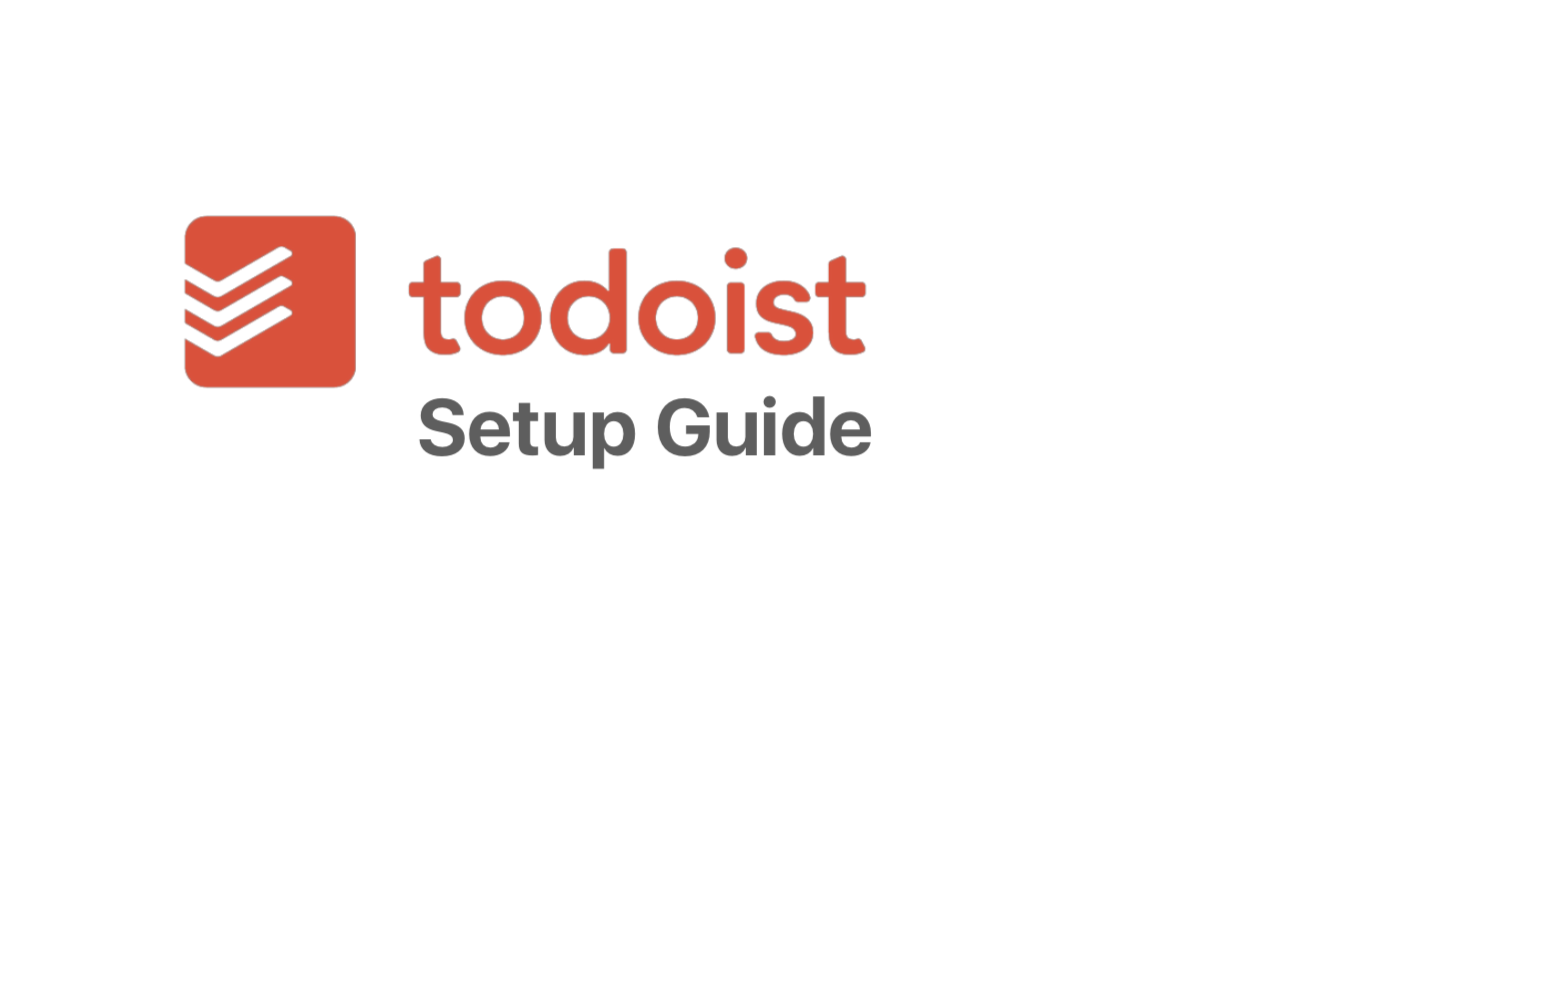 Beginners Guide To Setting Up Todoist - If you are new to Todoist, here's a simple guide to getting it set up and working for you in next to no time.